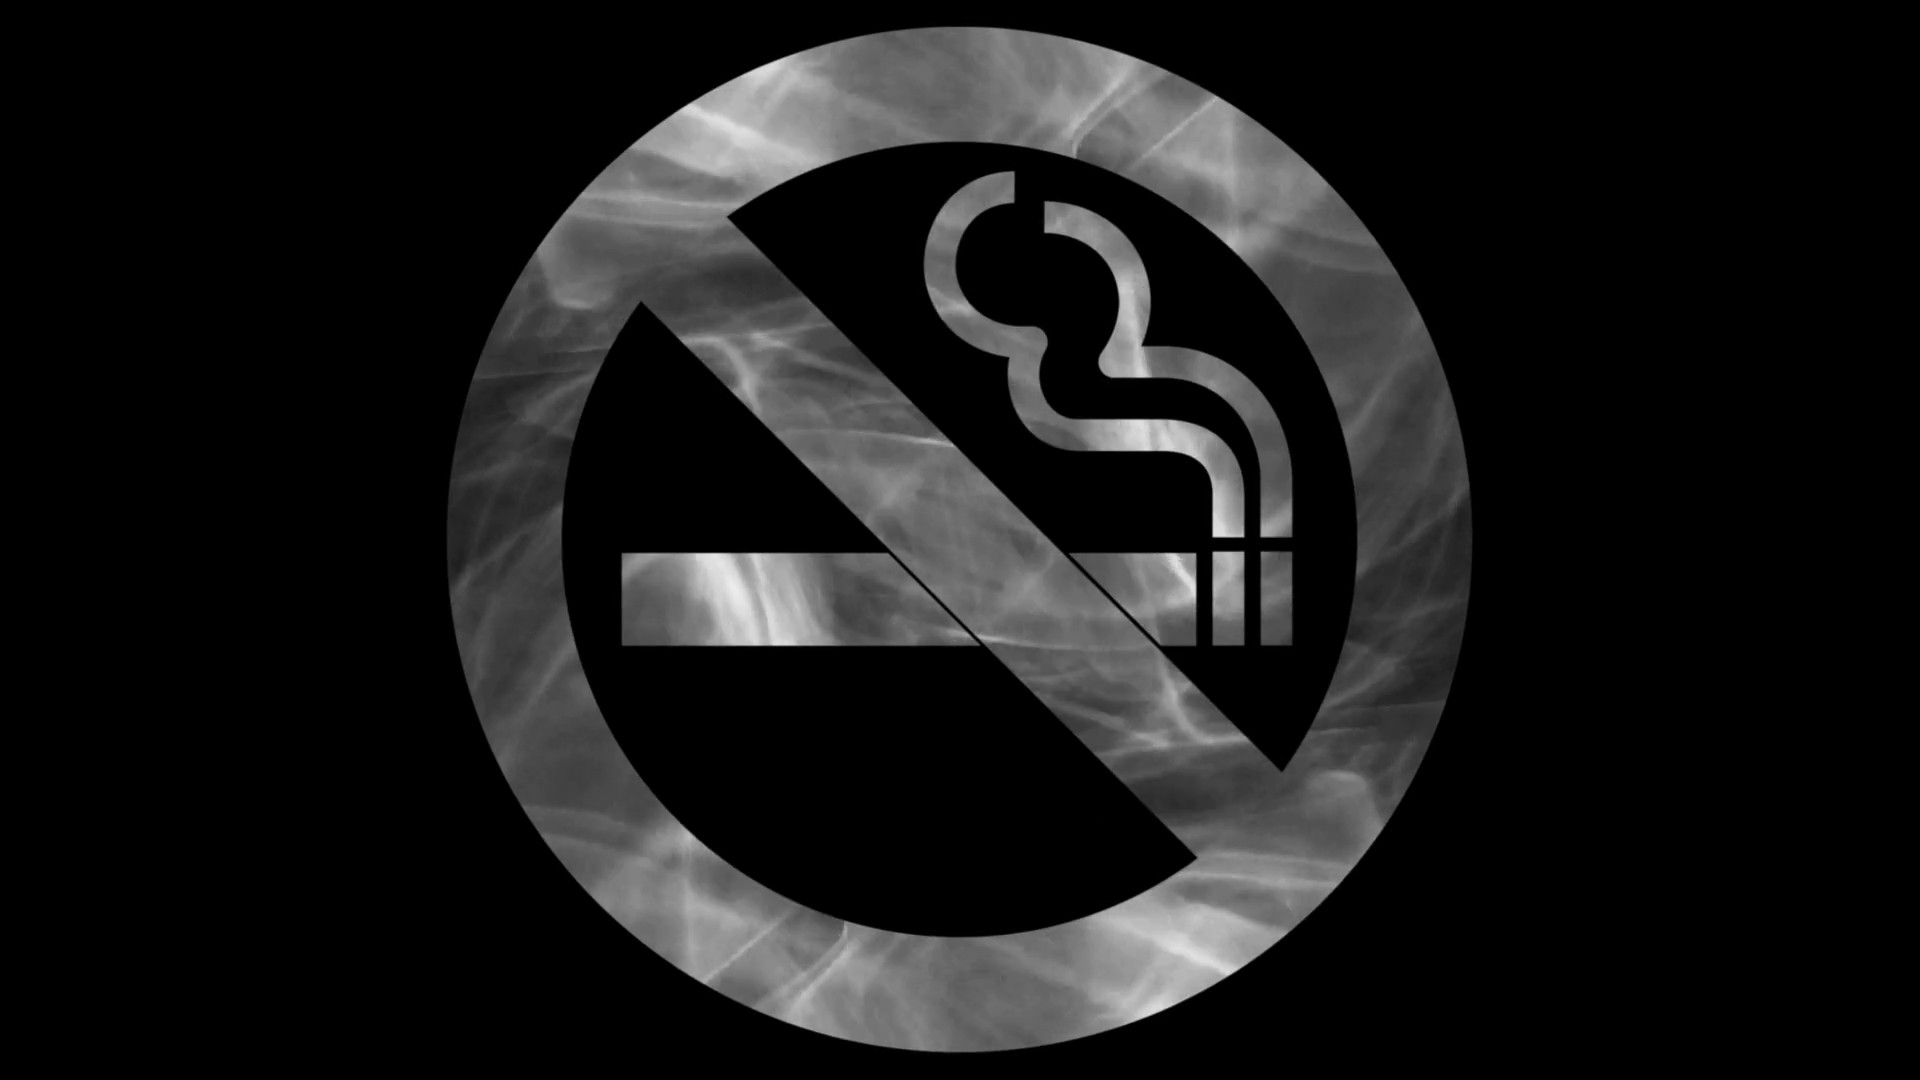 No Smoking Wallpapers 64 Background Pictures